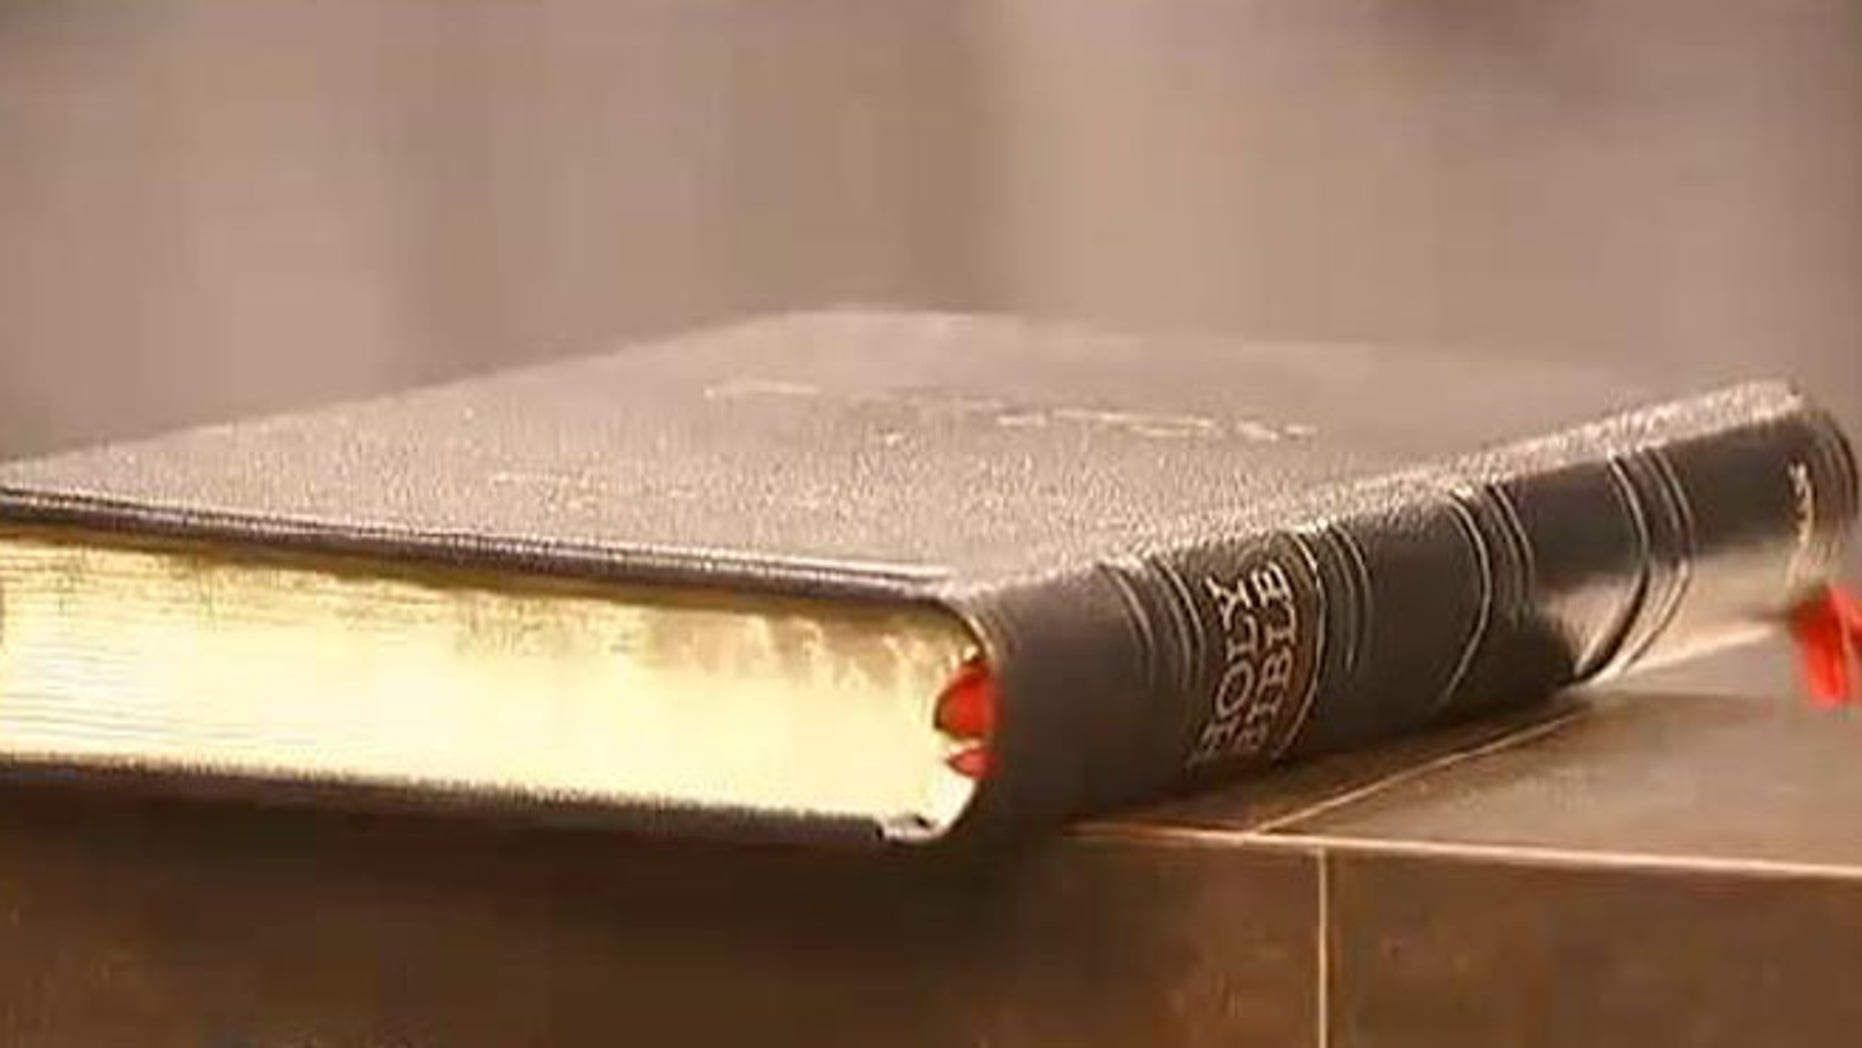 An atheist group is fighting to remove this Bible from Pinellas Park's city council chamber.